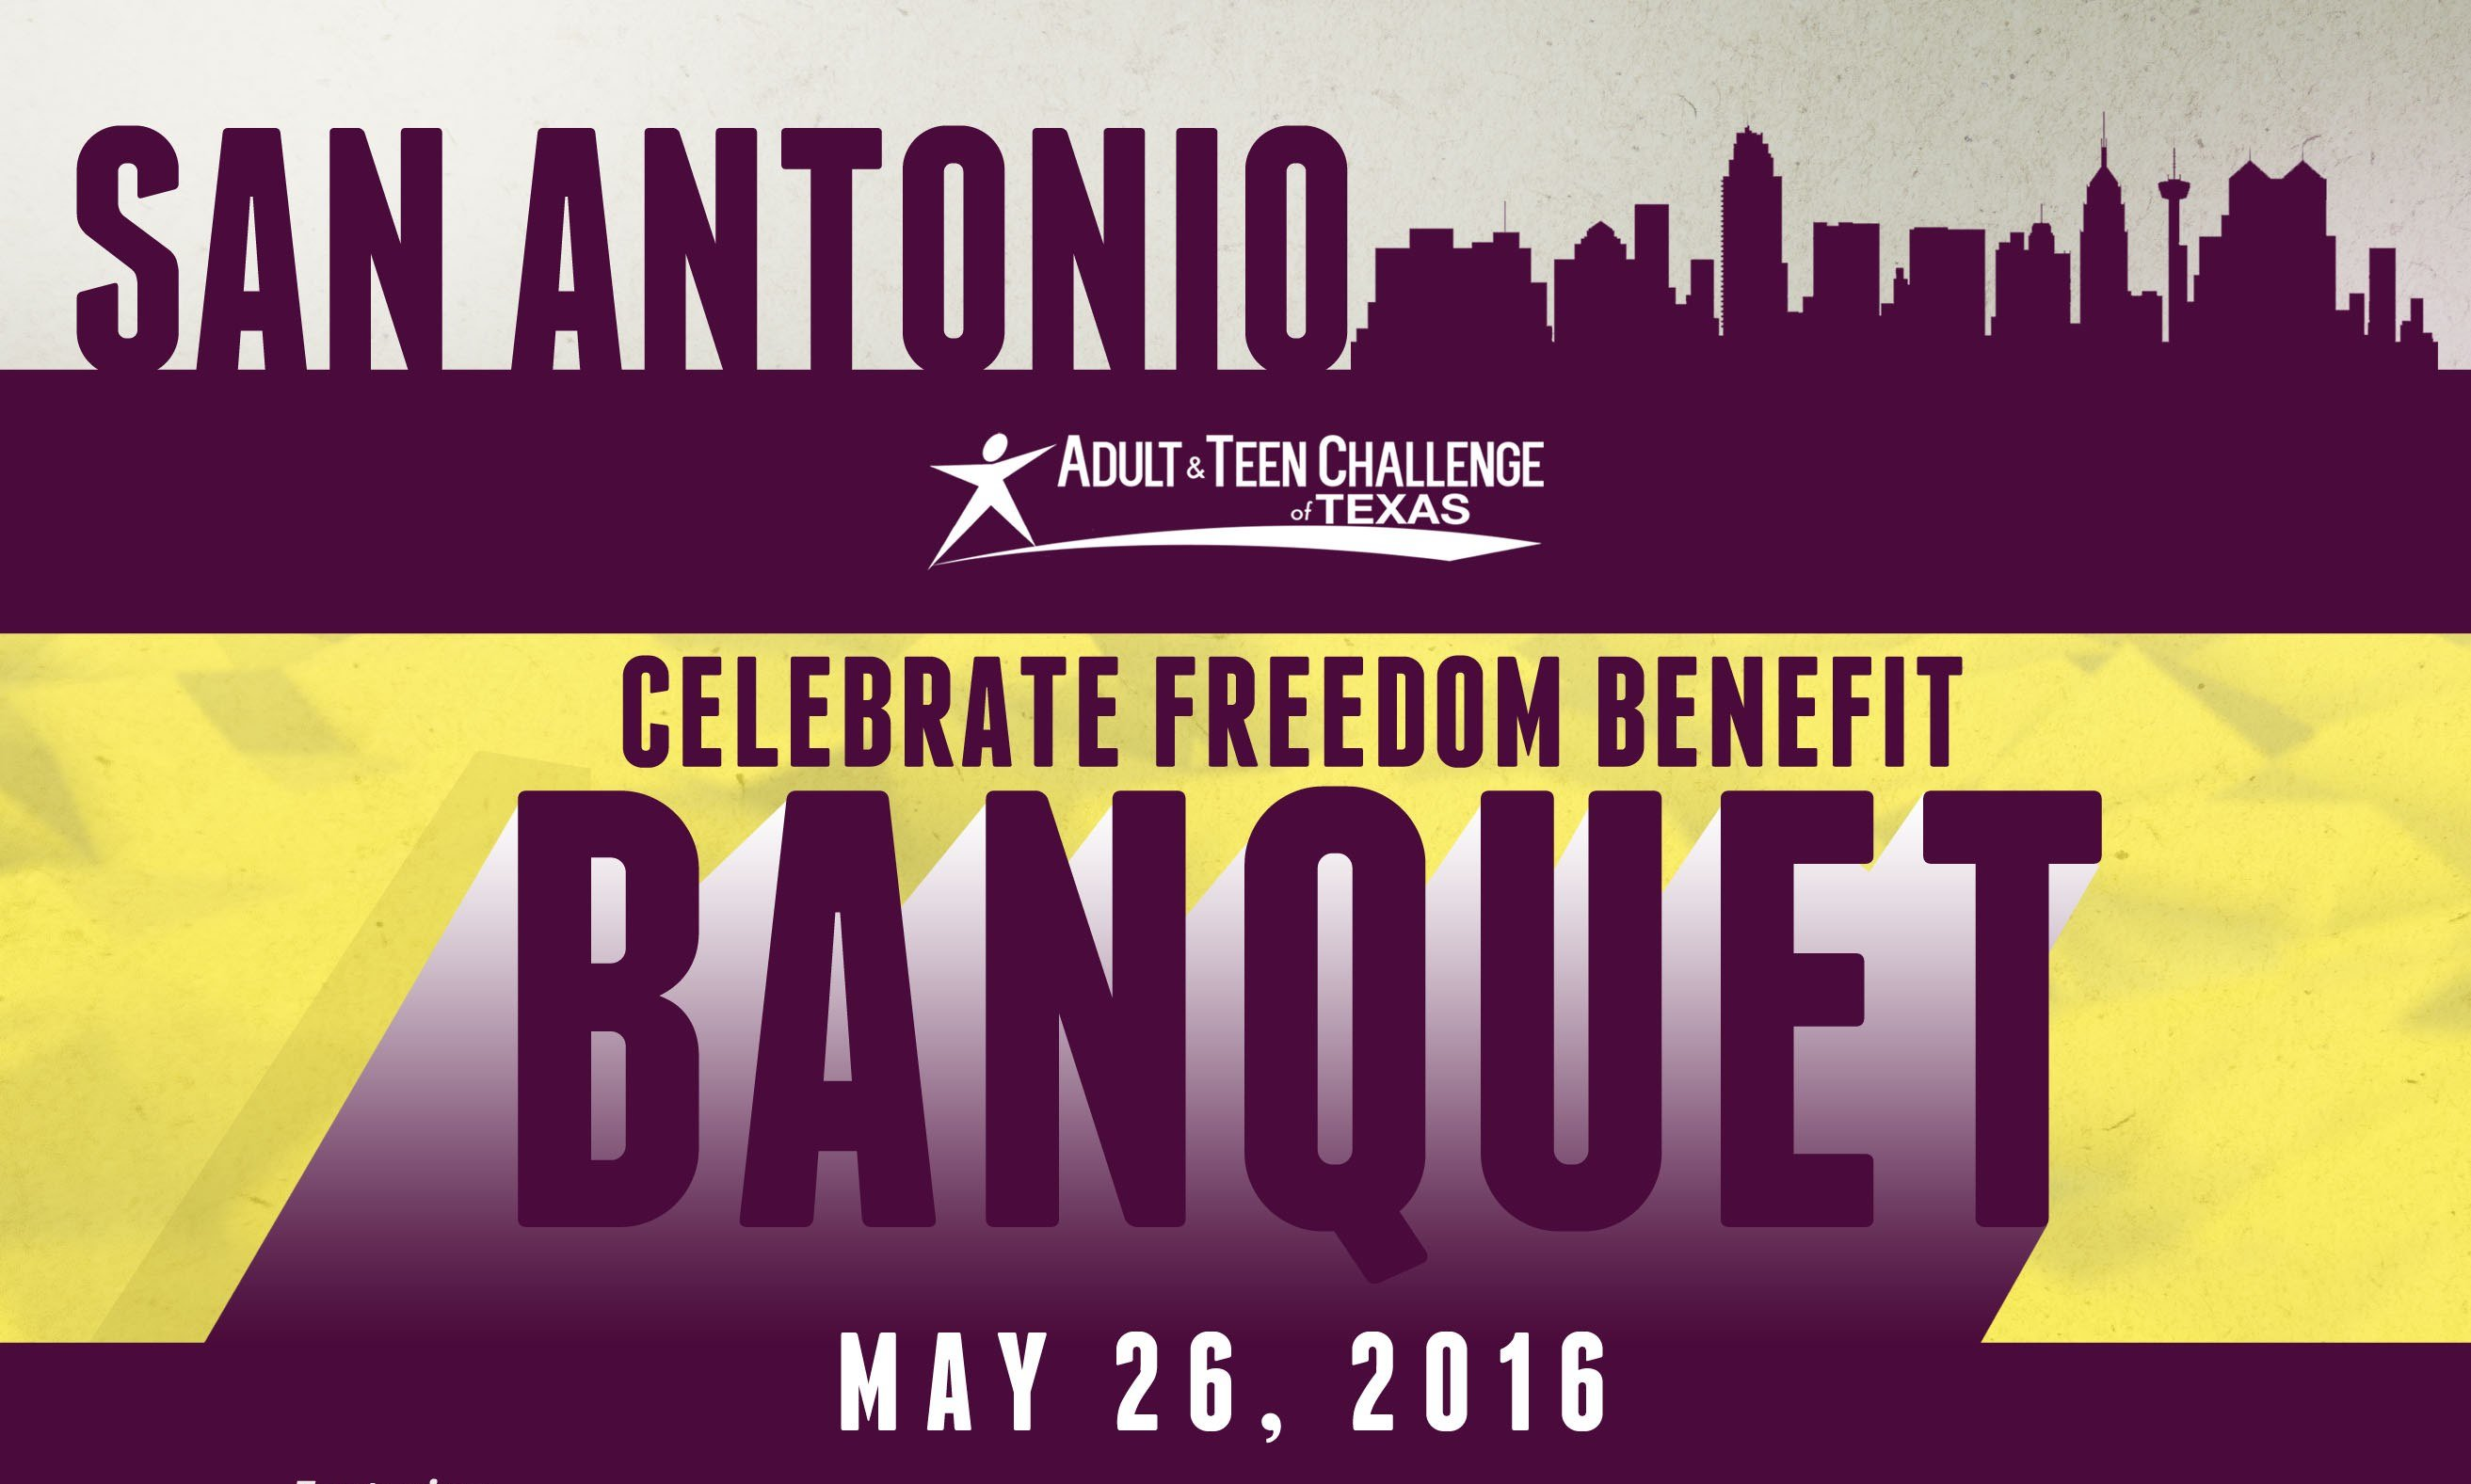 Banquet_2016_SanAntonio.button